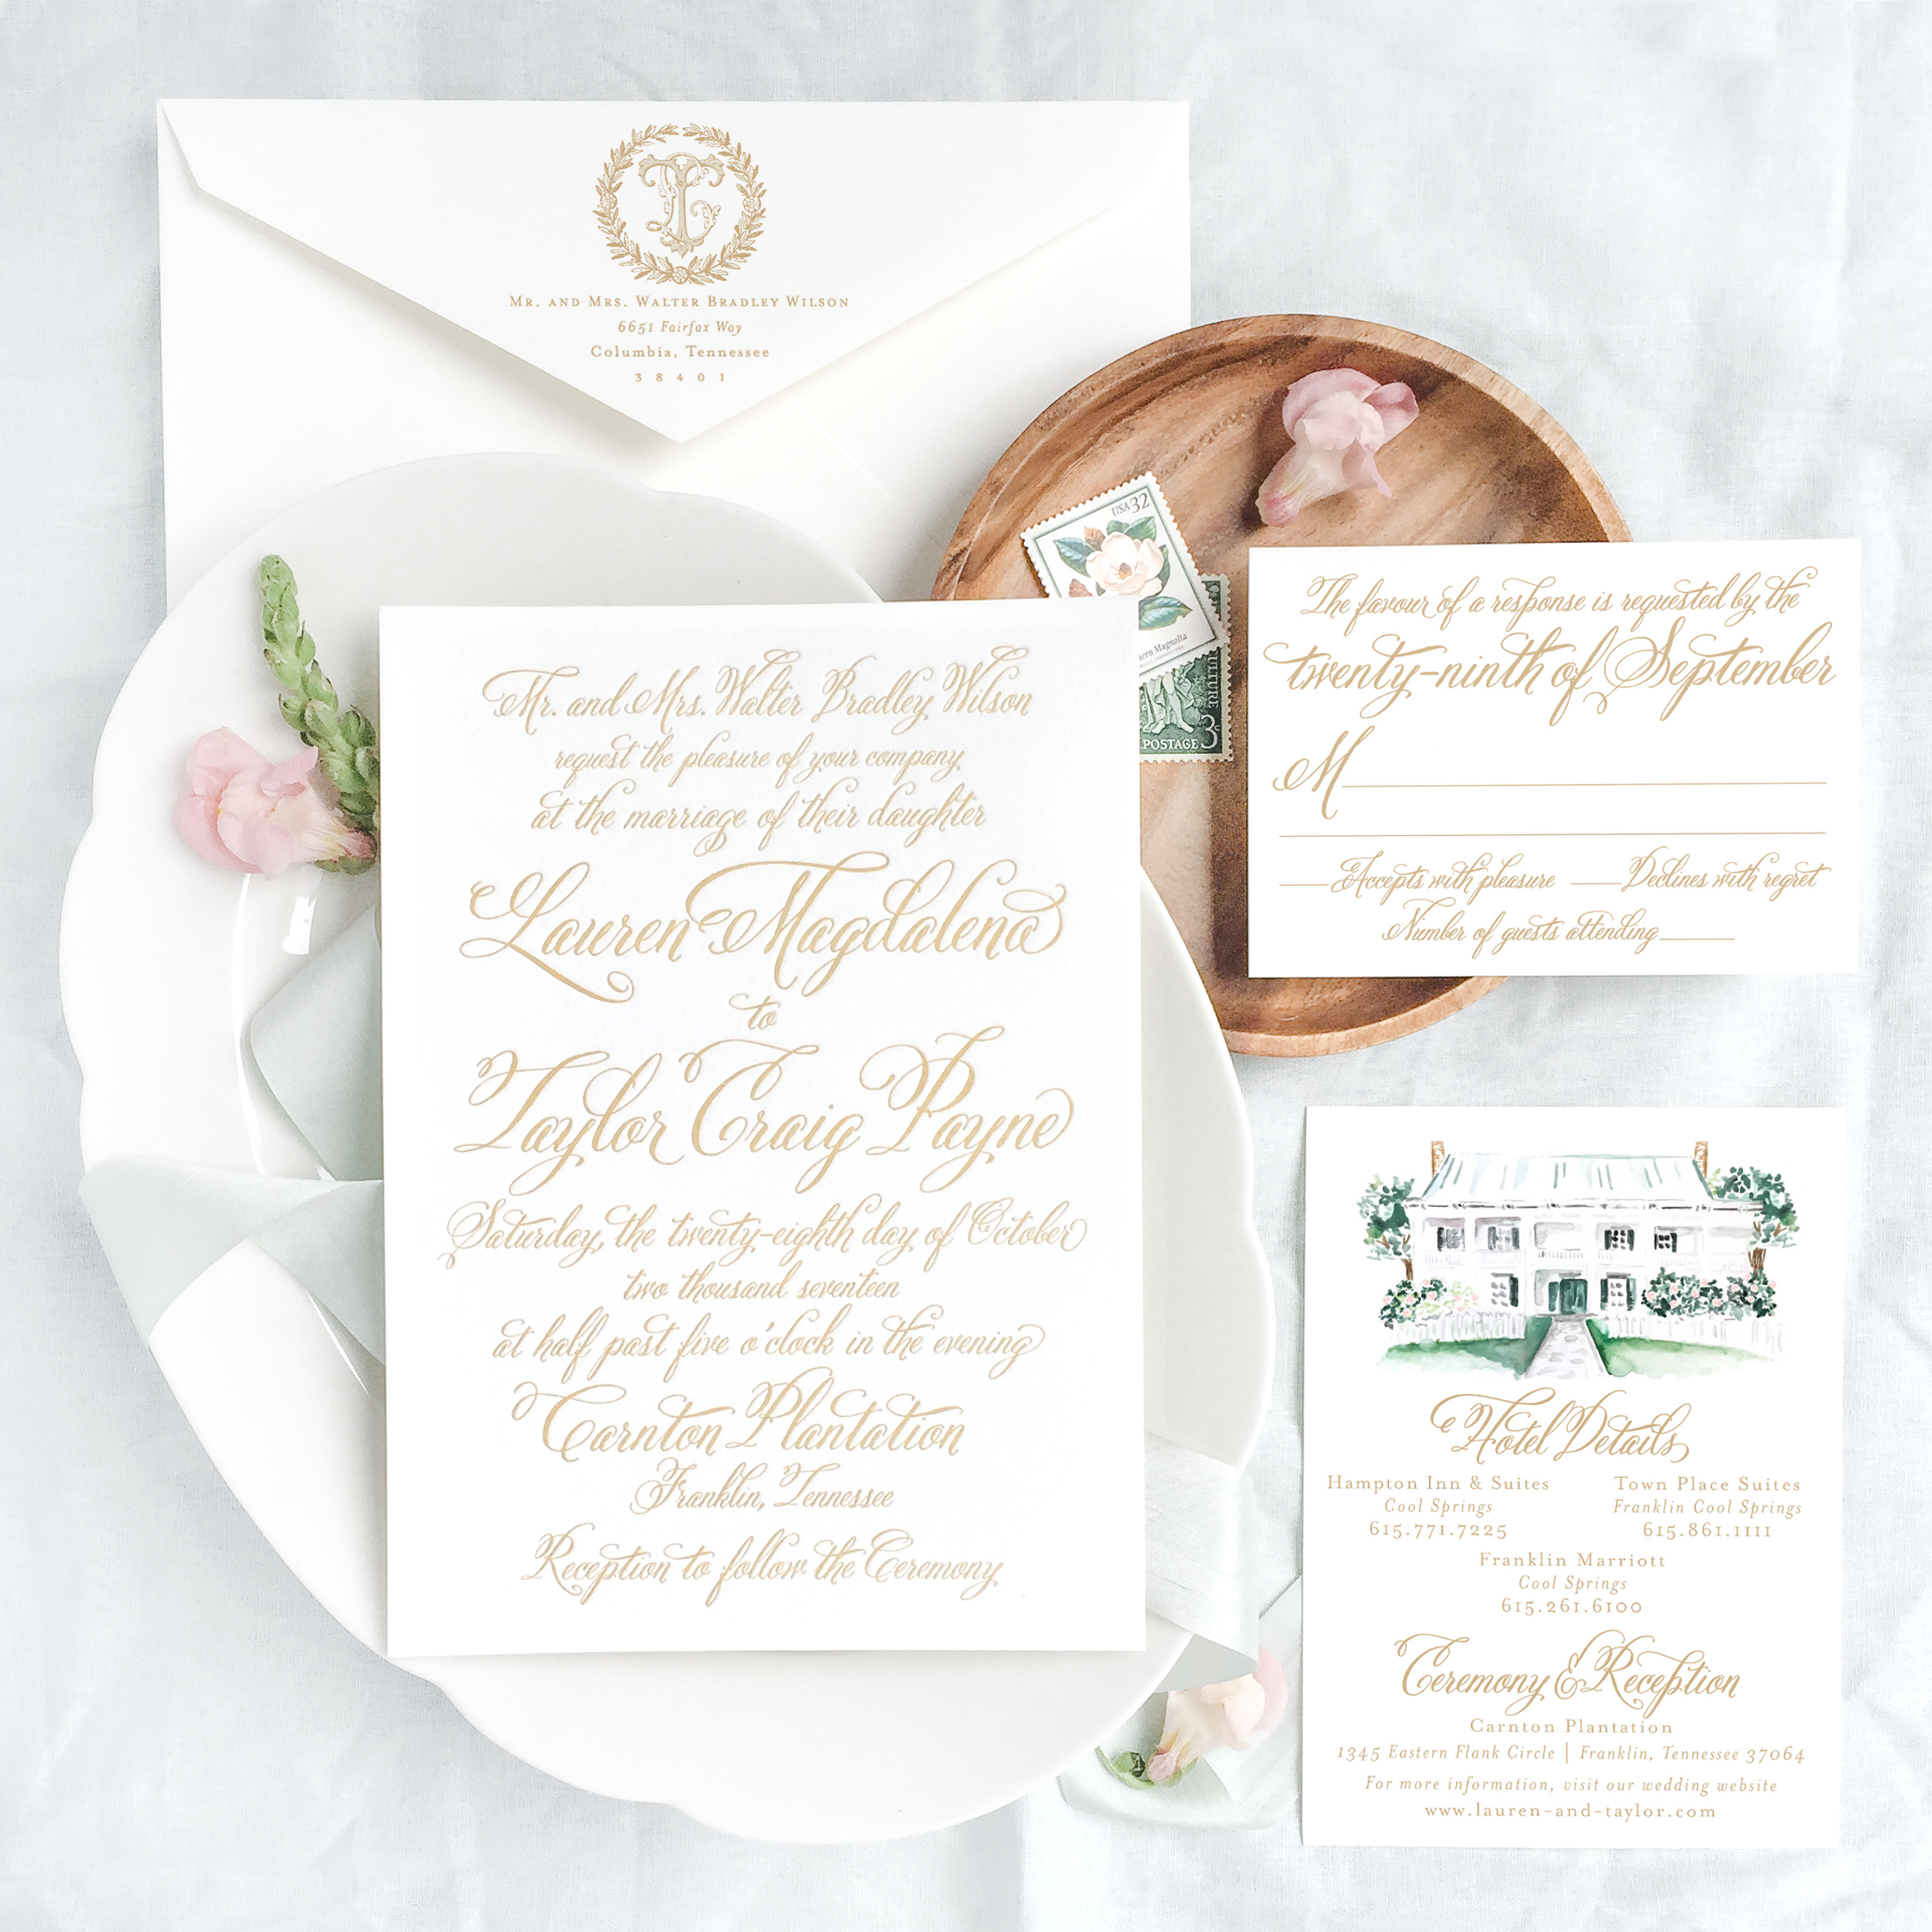 A custom letterpress suite for our October 2017 clients Lauren and Taylor